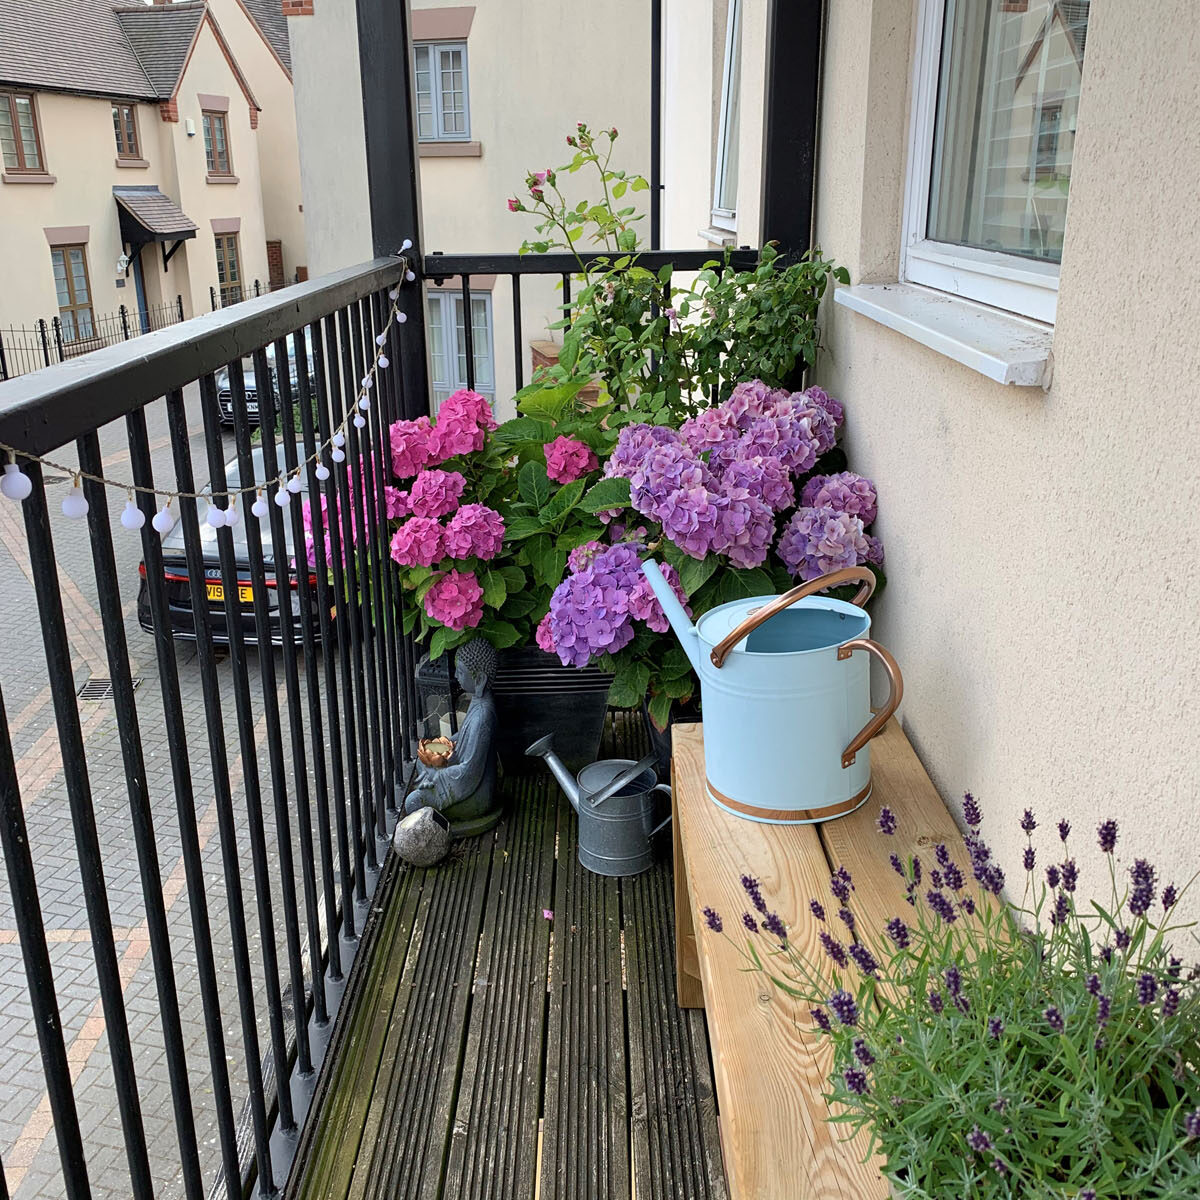 A photo of a narrow balcony, with dense flowers at the end.